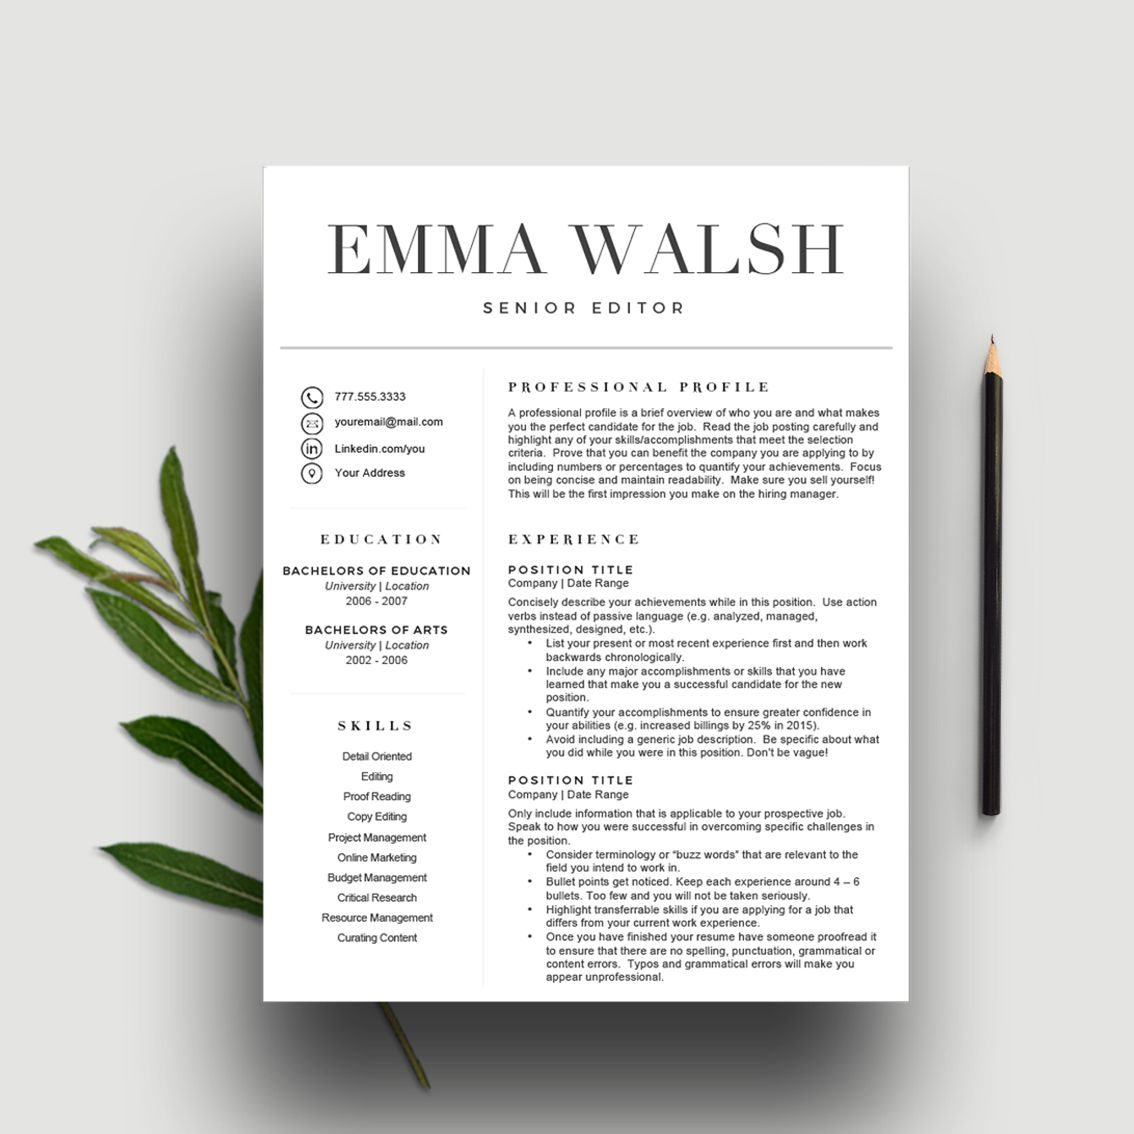 clean and classic resume template highlight your skills qualifications and experience in this organized and easy to read format 100 customizable for ms